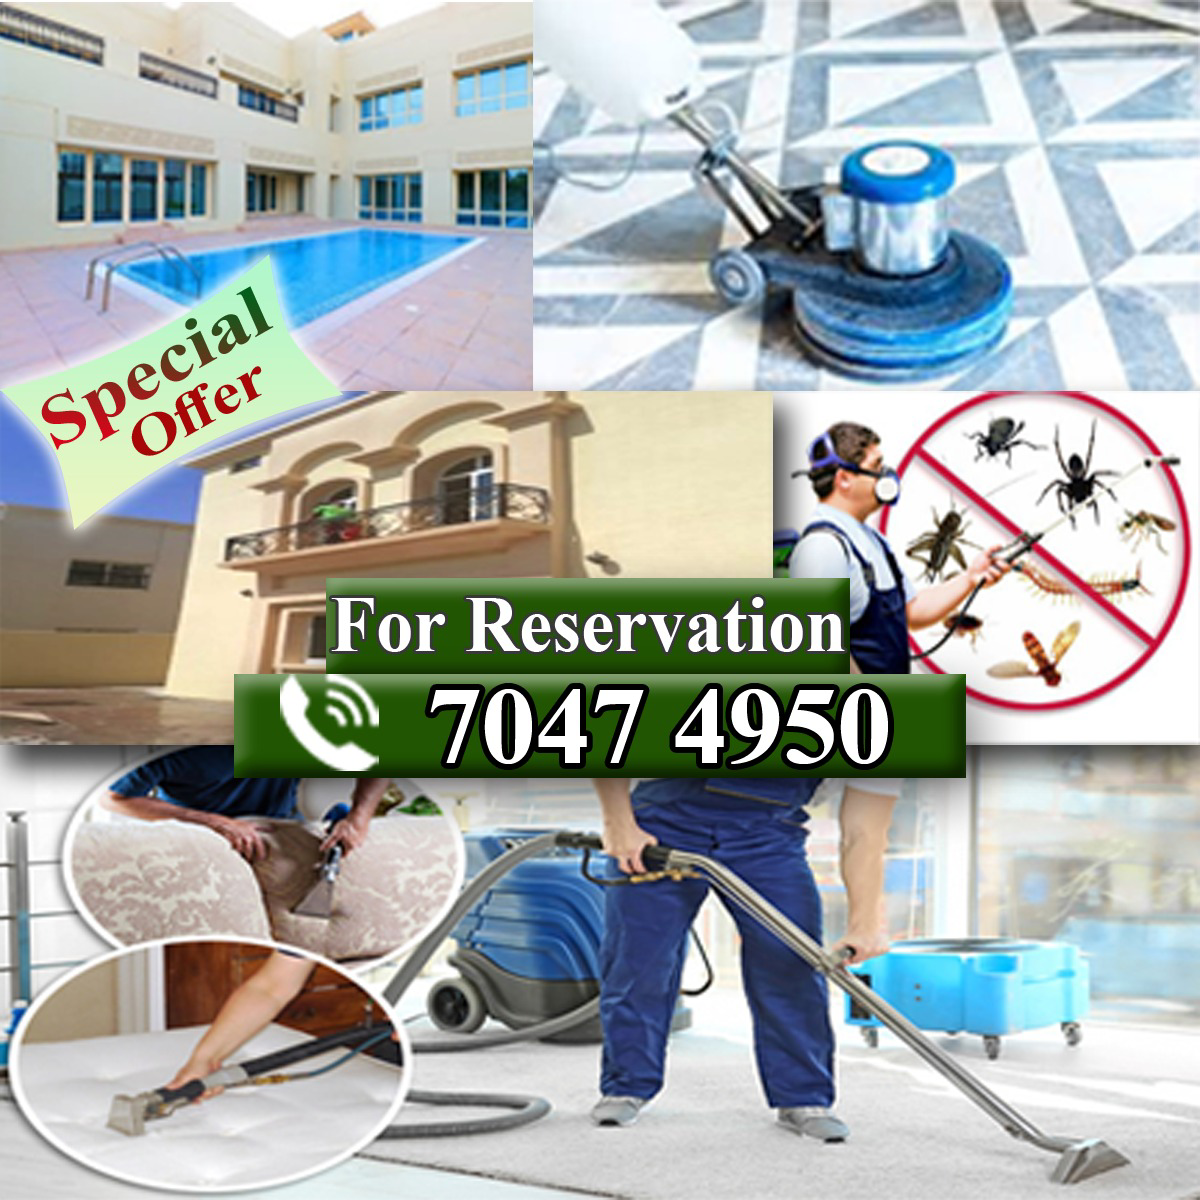 amkof cleaning services